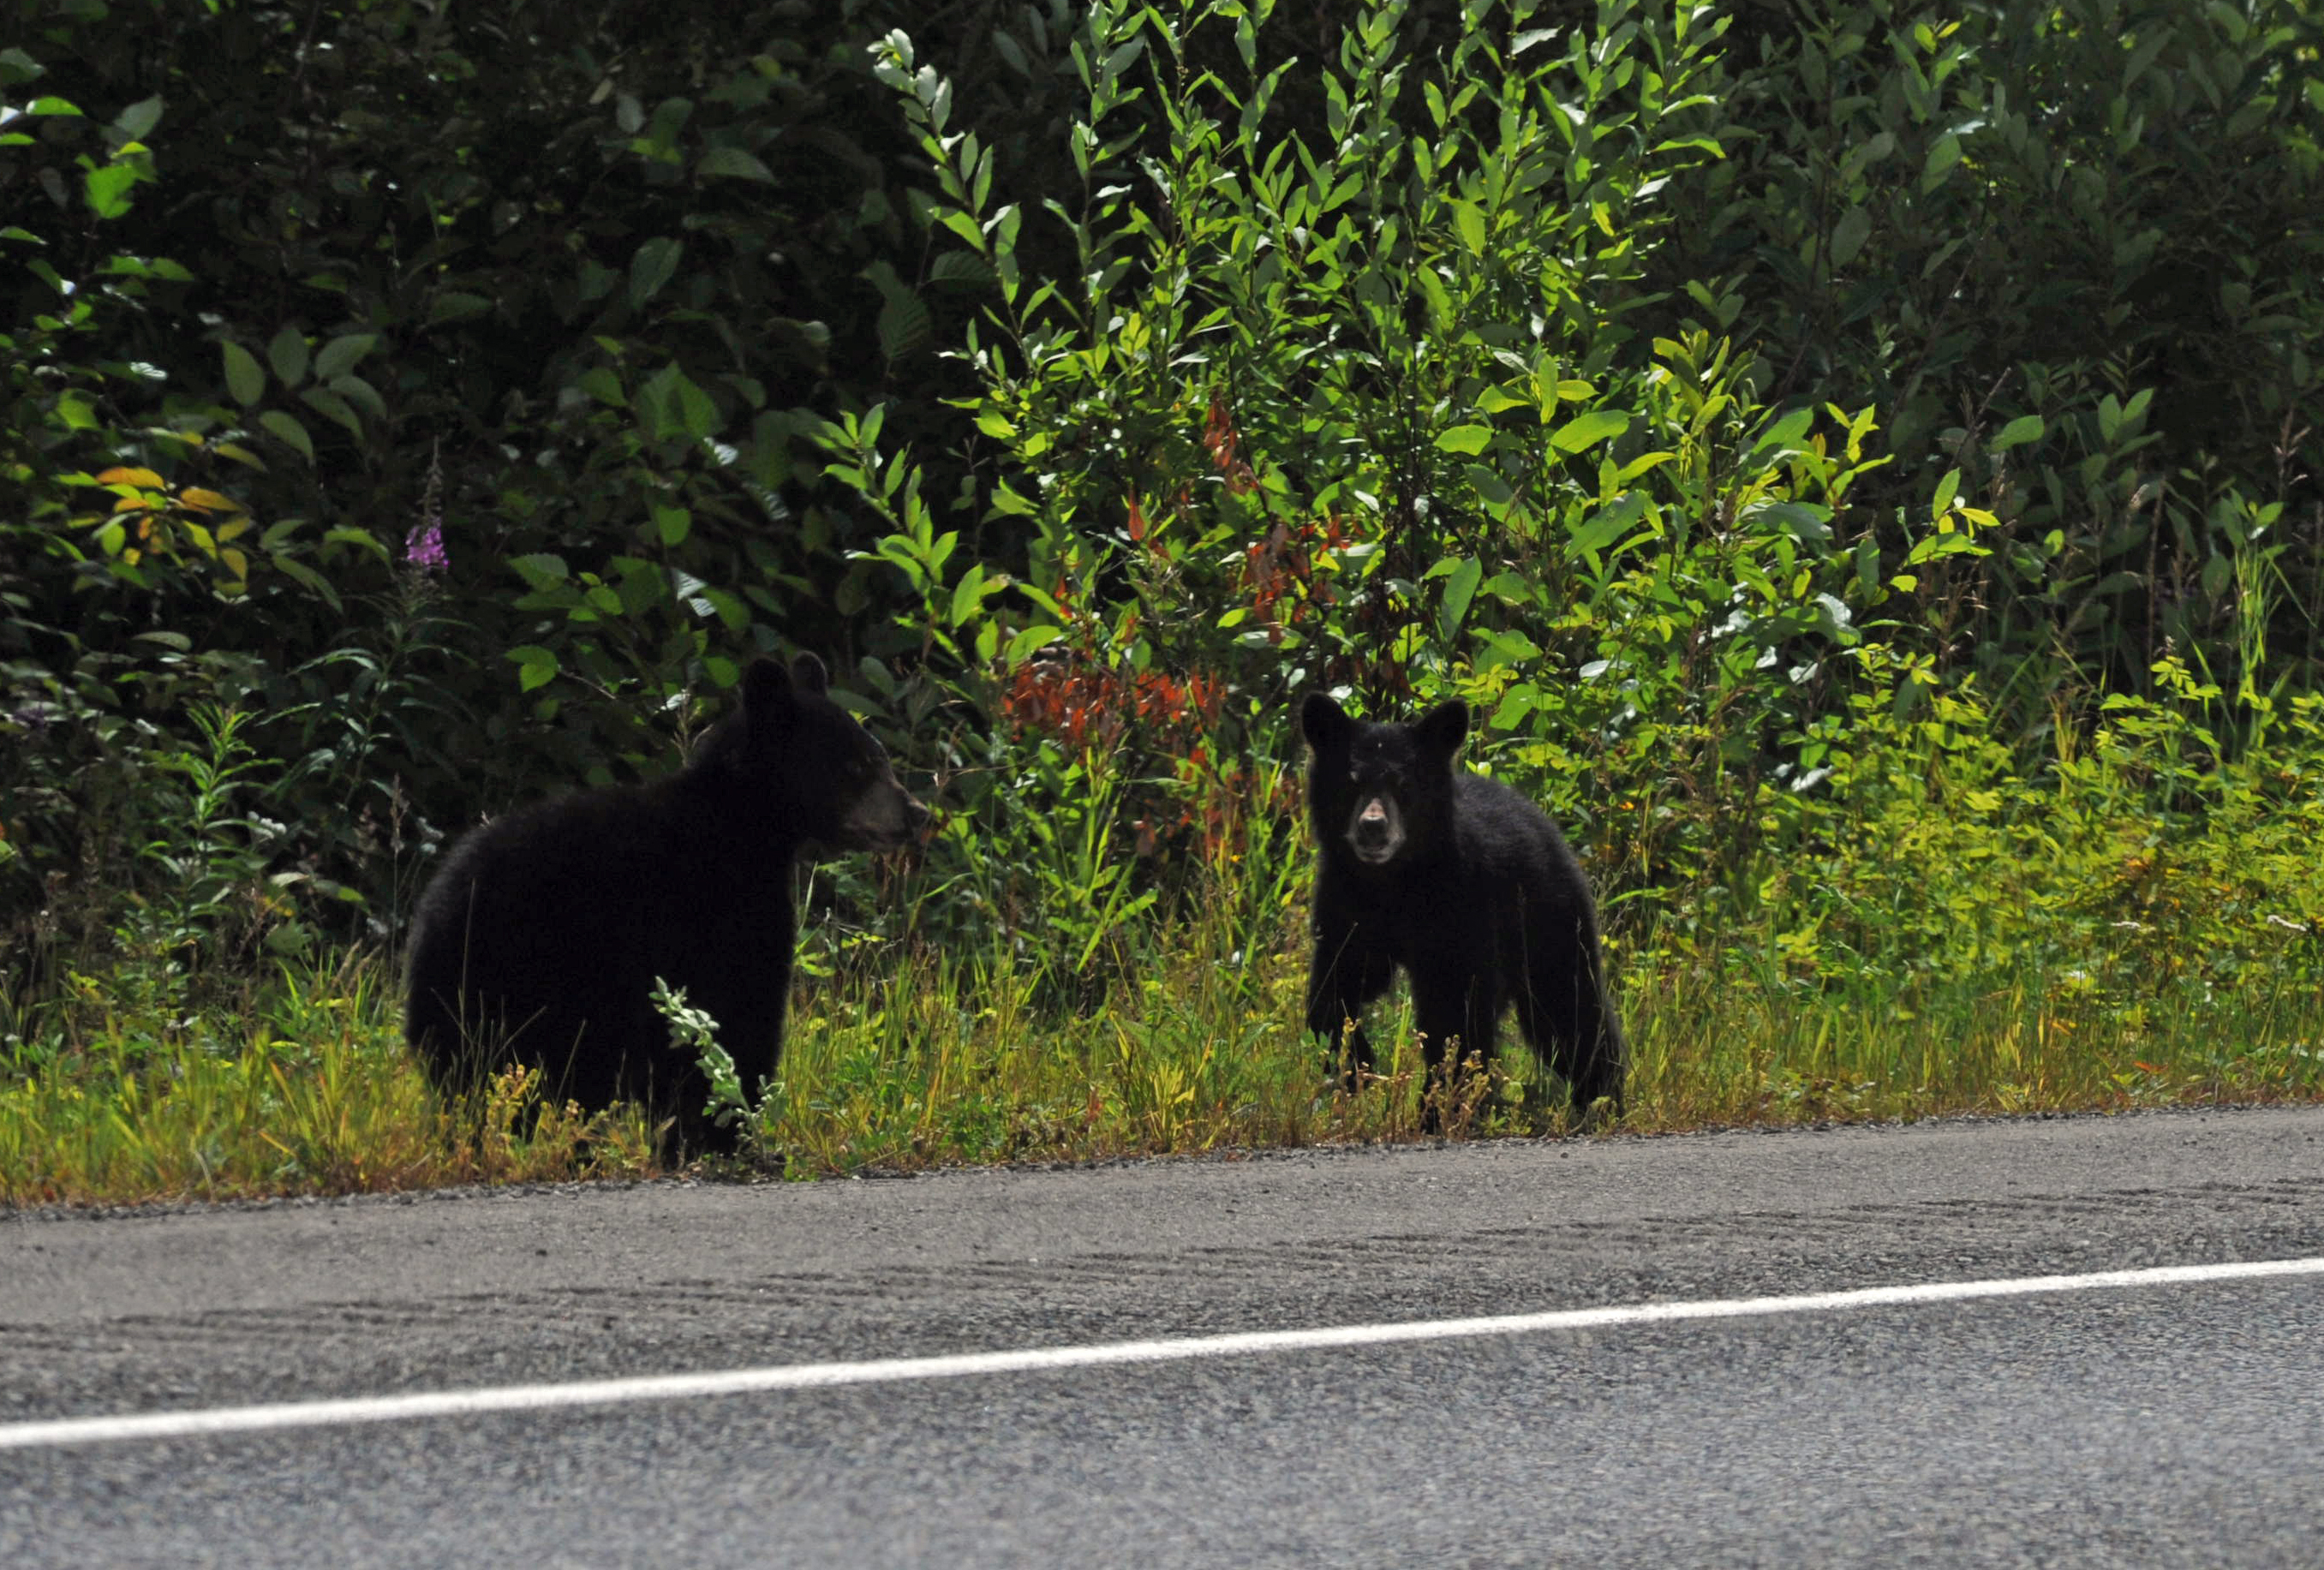 2 black bear cubs